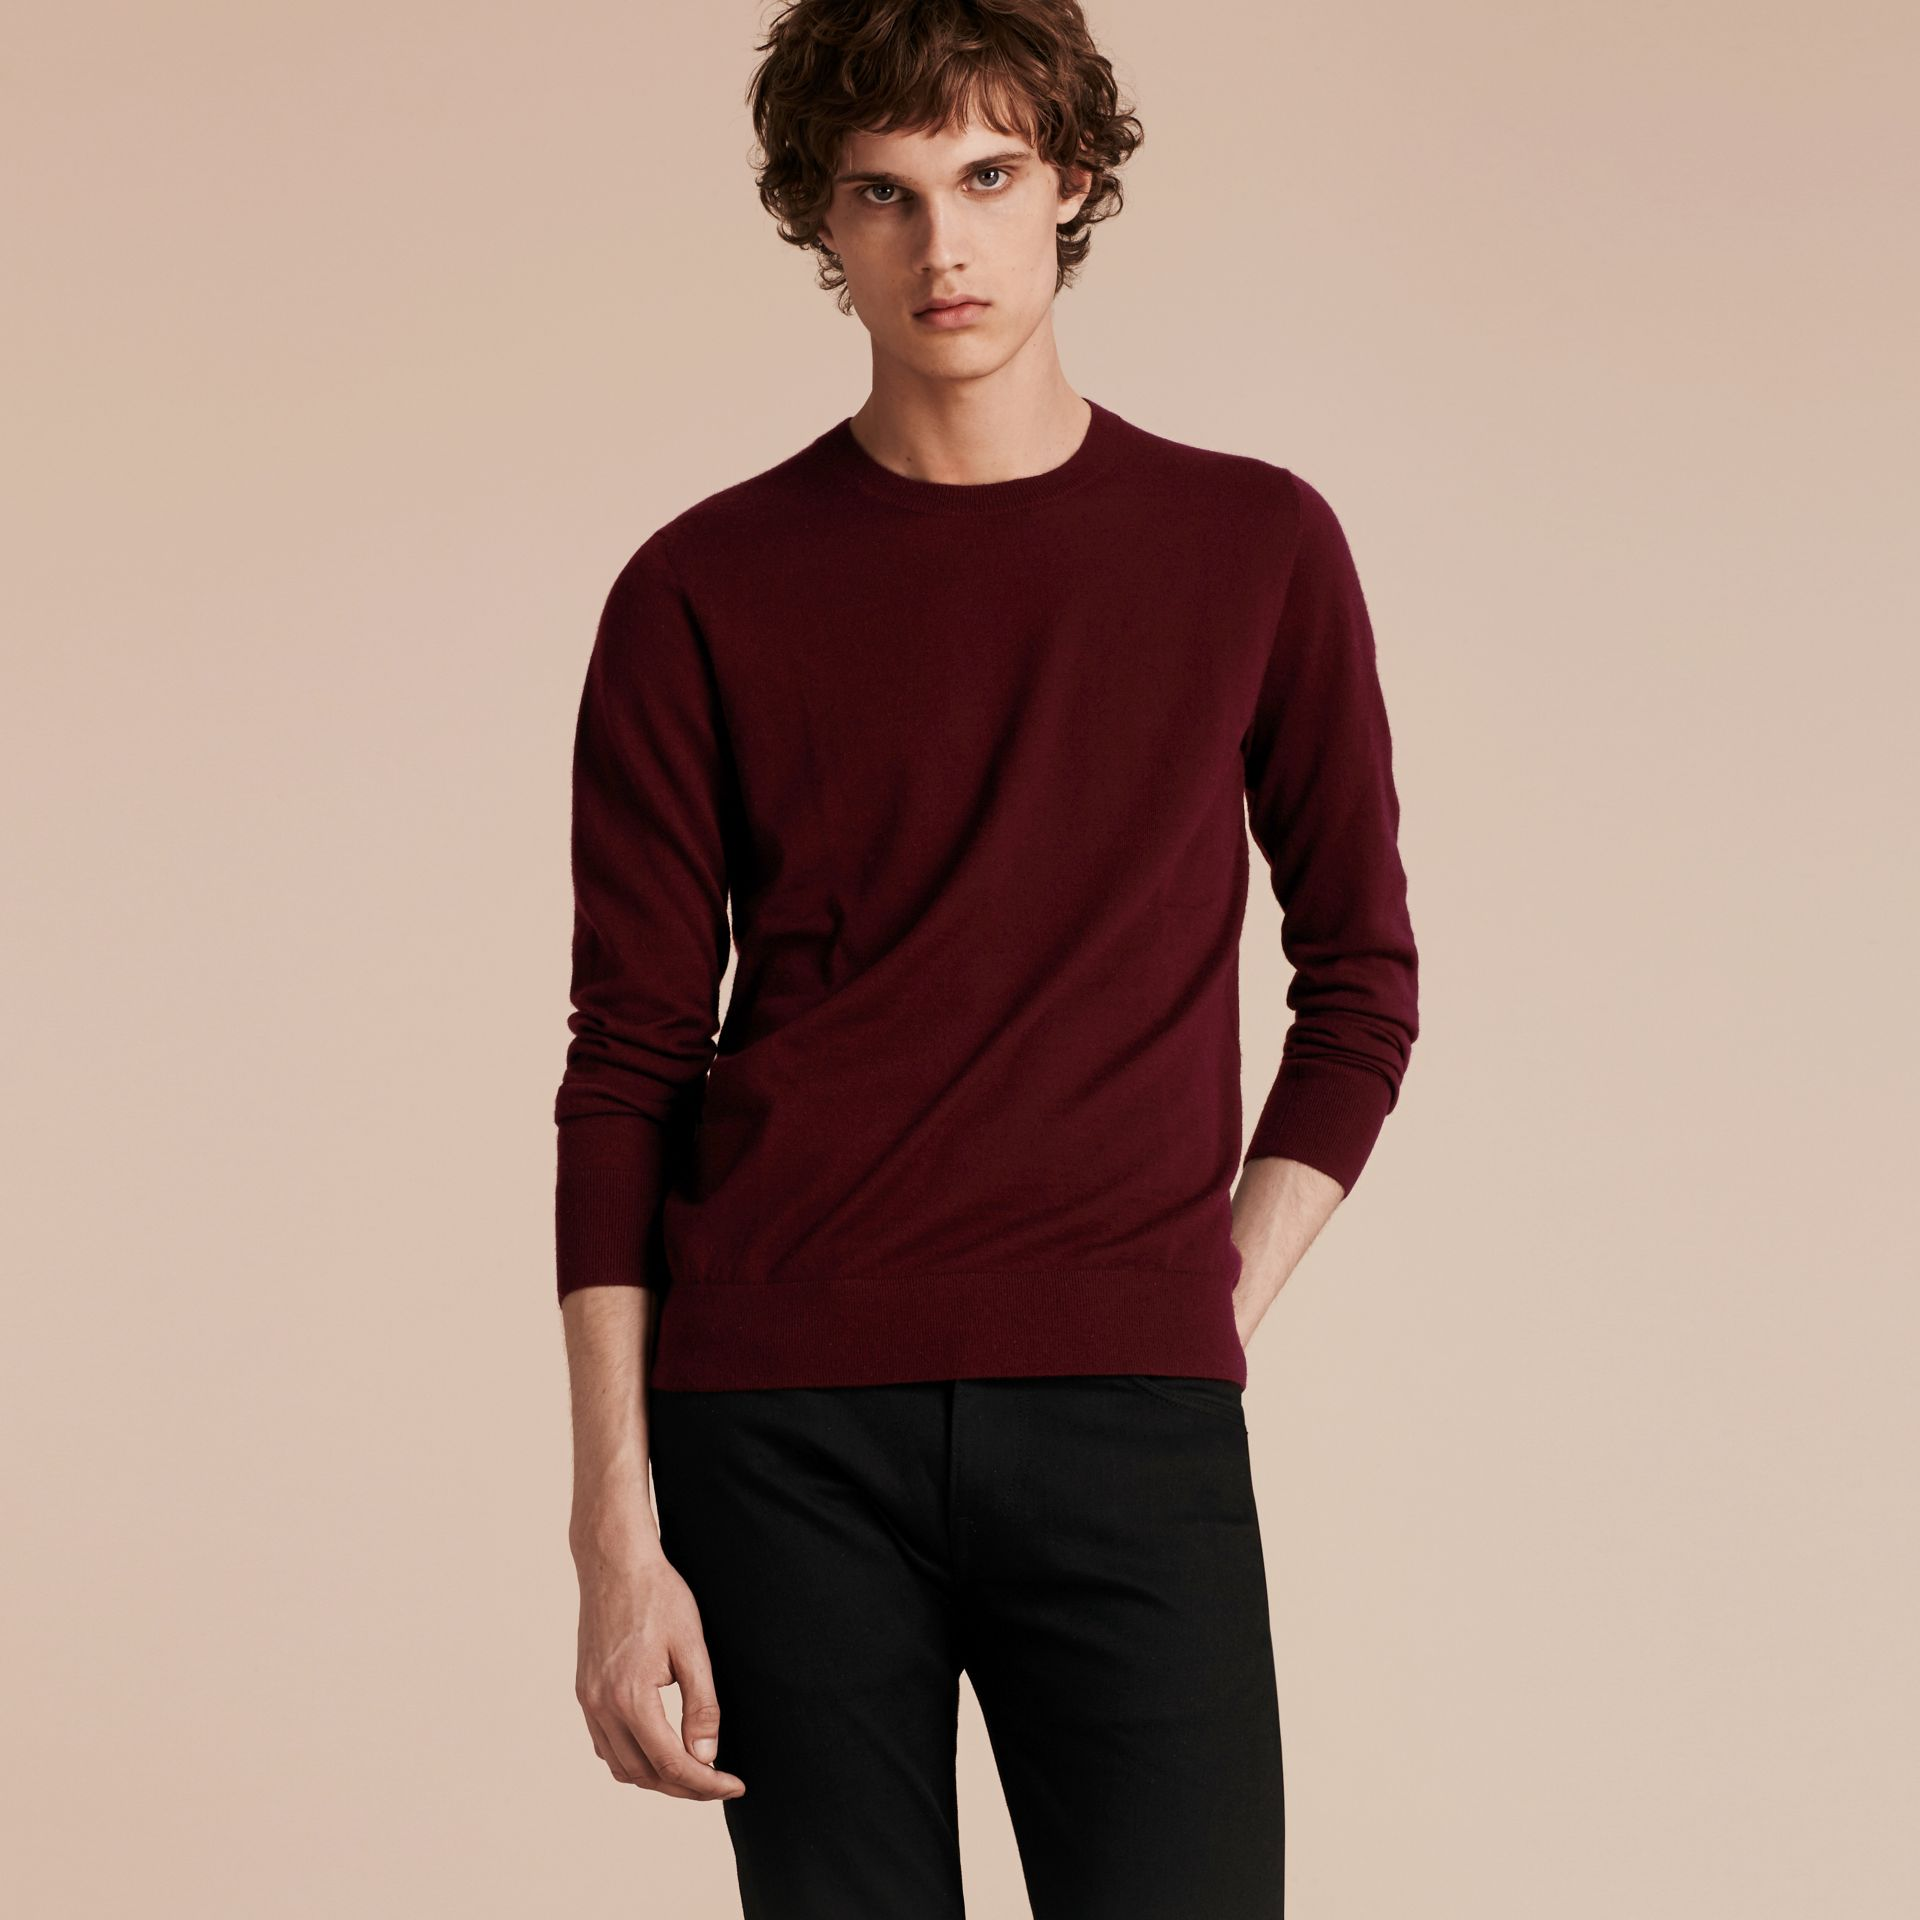 Lightweight Crew Neck Cashmere Sweater with Check Trim in Deep Claret - Men | Burberry - gallery image 6